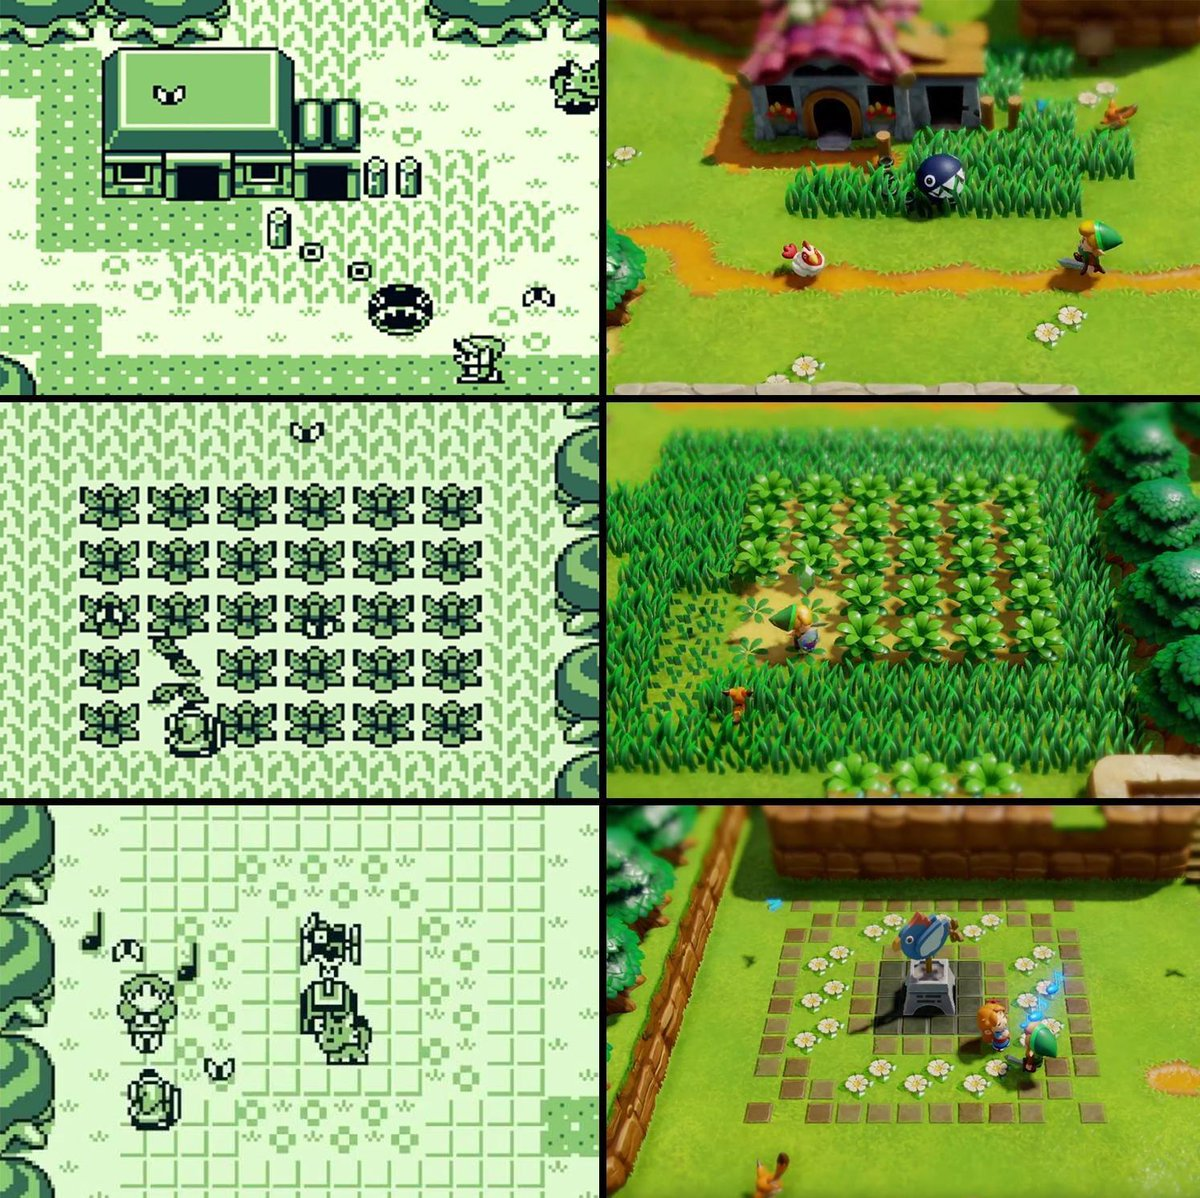 Gamepedia On Twitter A Look At Link S Awakening Then And